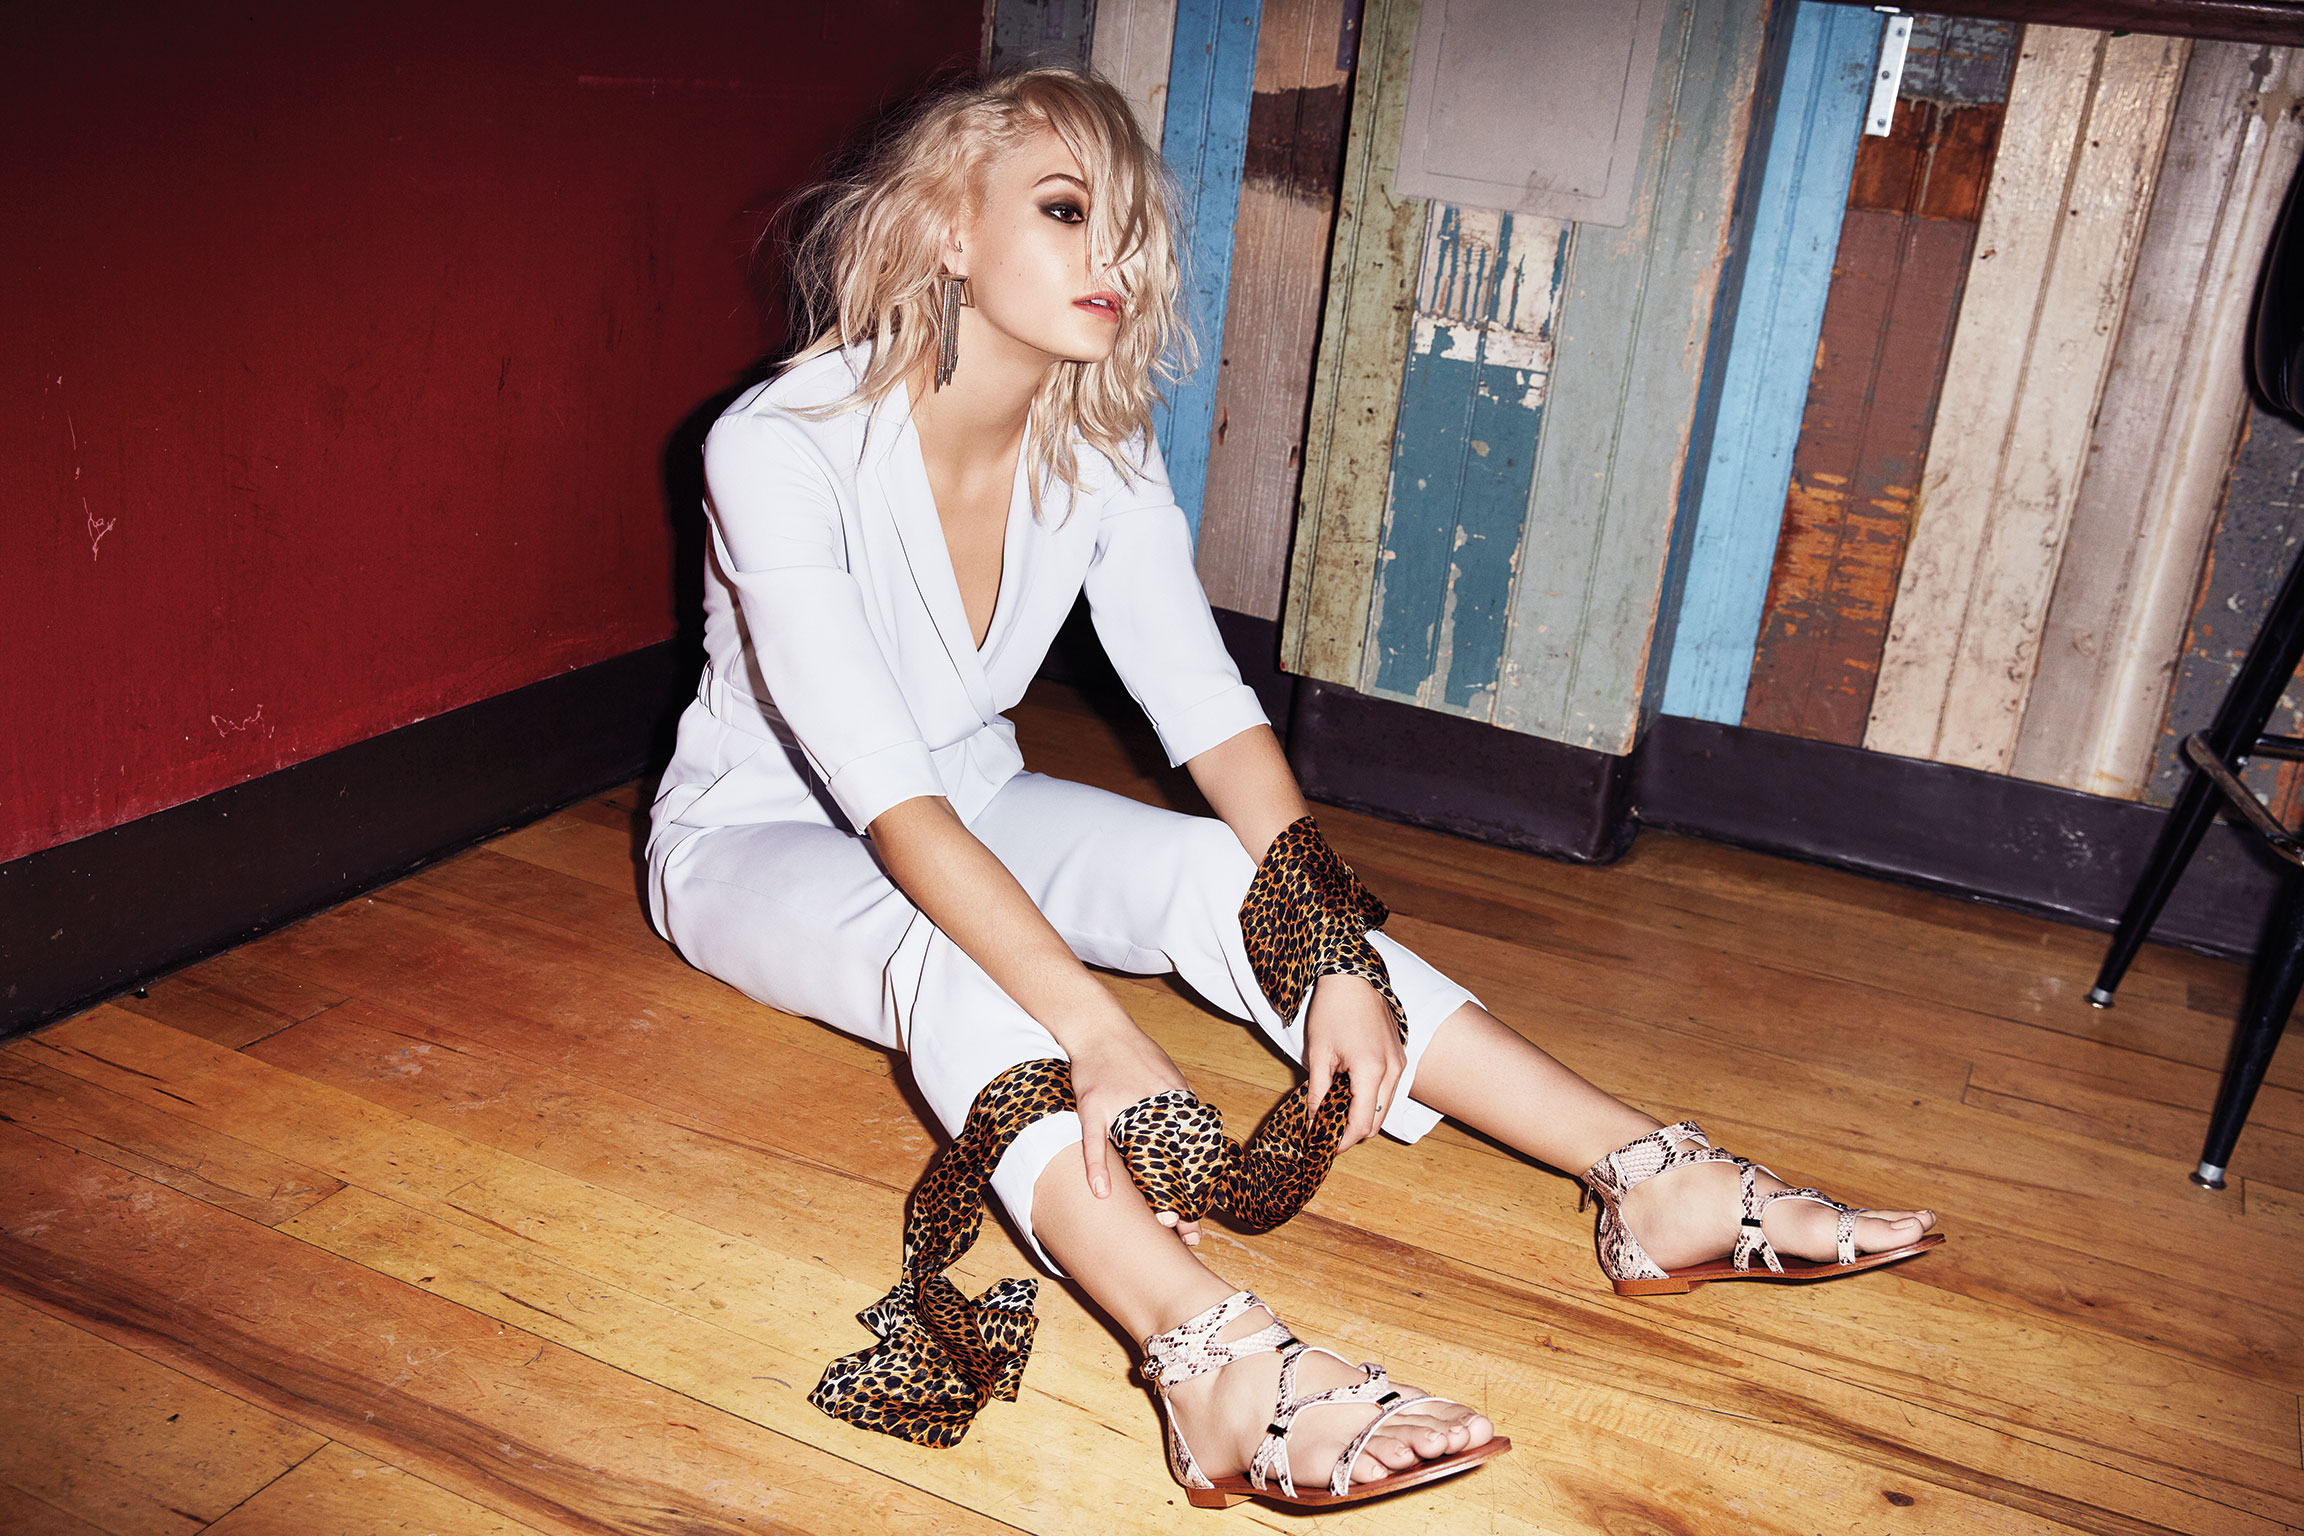 STEVE-MADDEN-SS15-CAMPAIGN-STYLED-BY-ANDREA-MESSIER-CUOMO-15.jpg